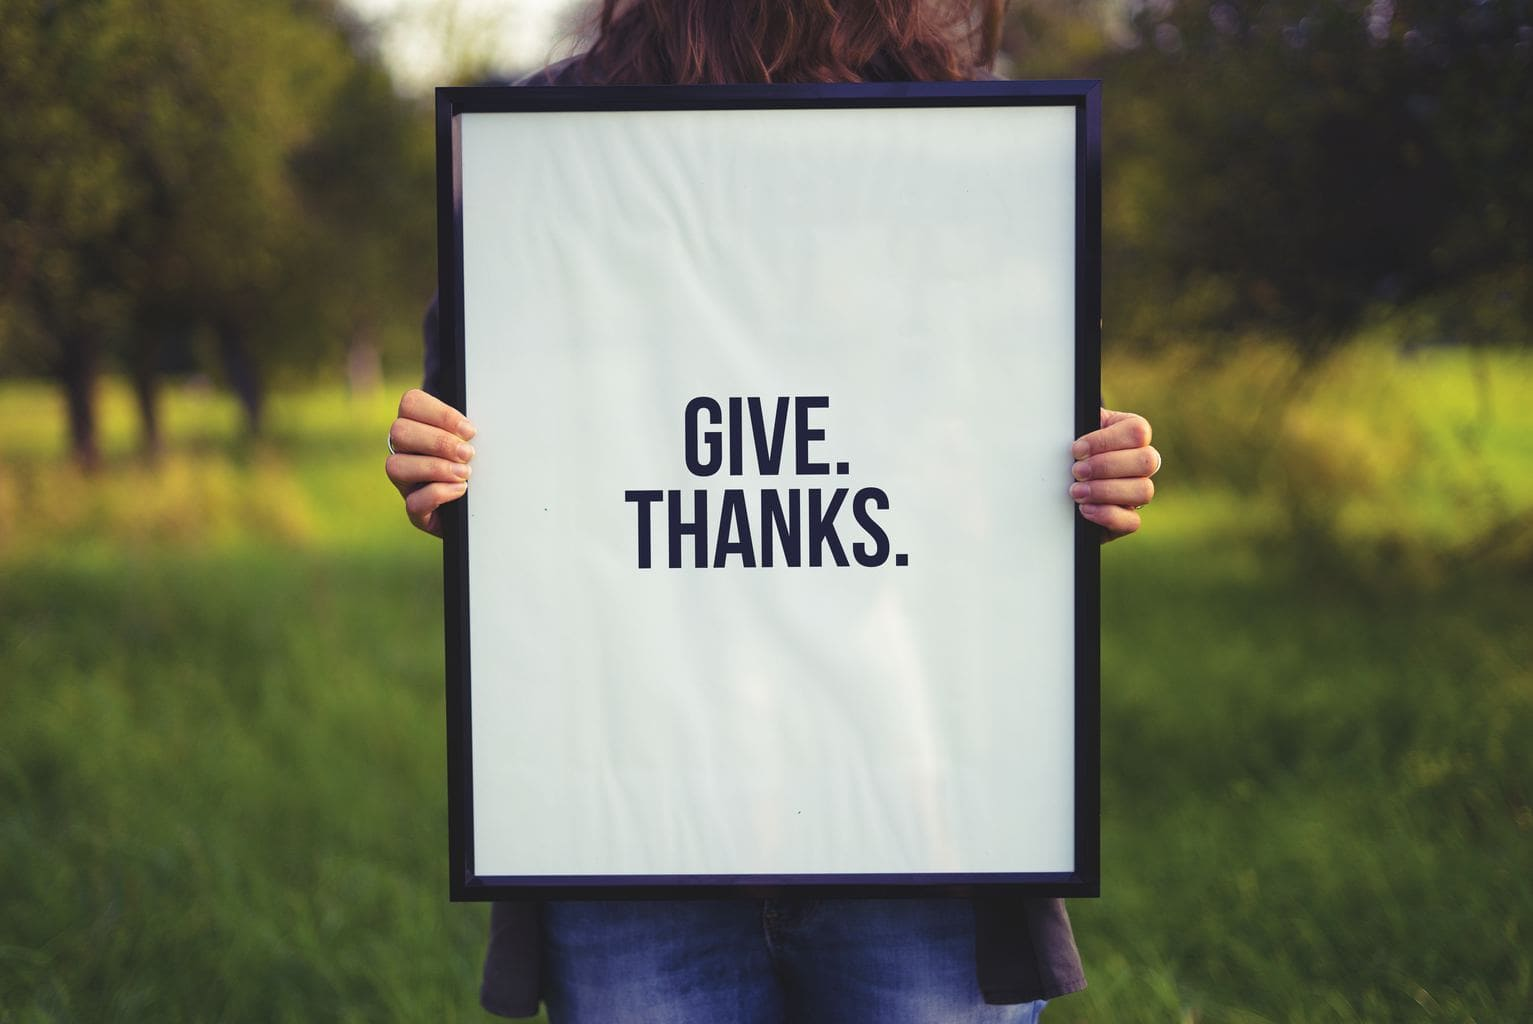 """Photo of woman standing outside and holding white framed sign that says """"GIVE. THANKS."""" in black capital letters."""